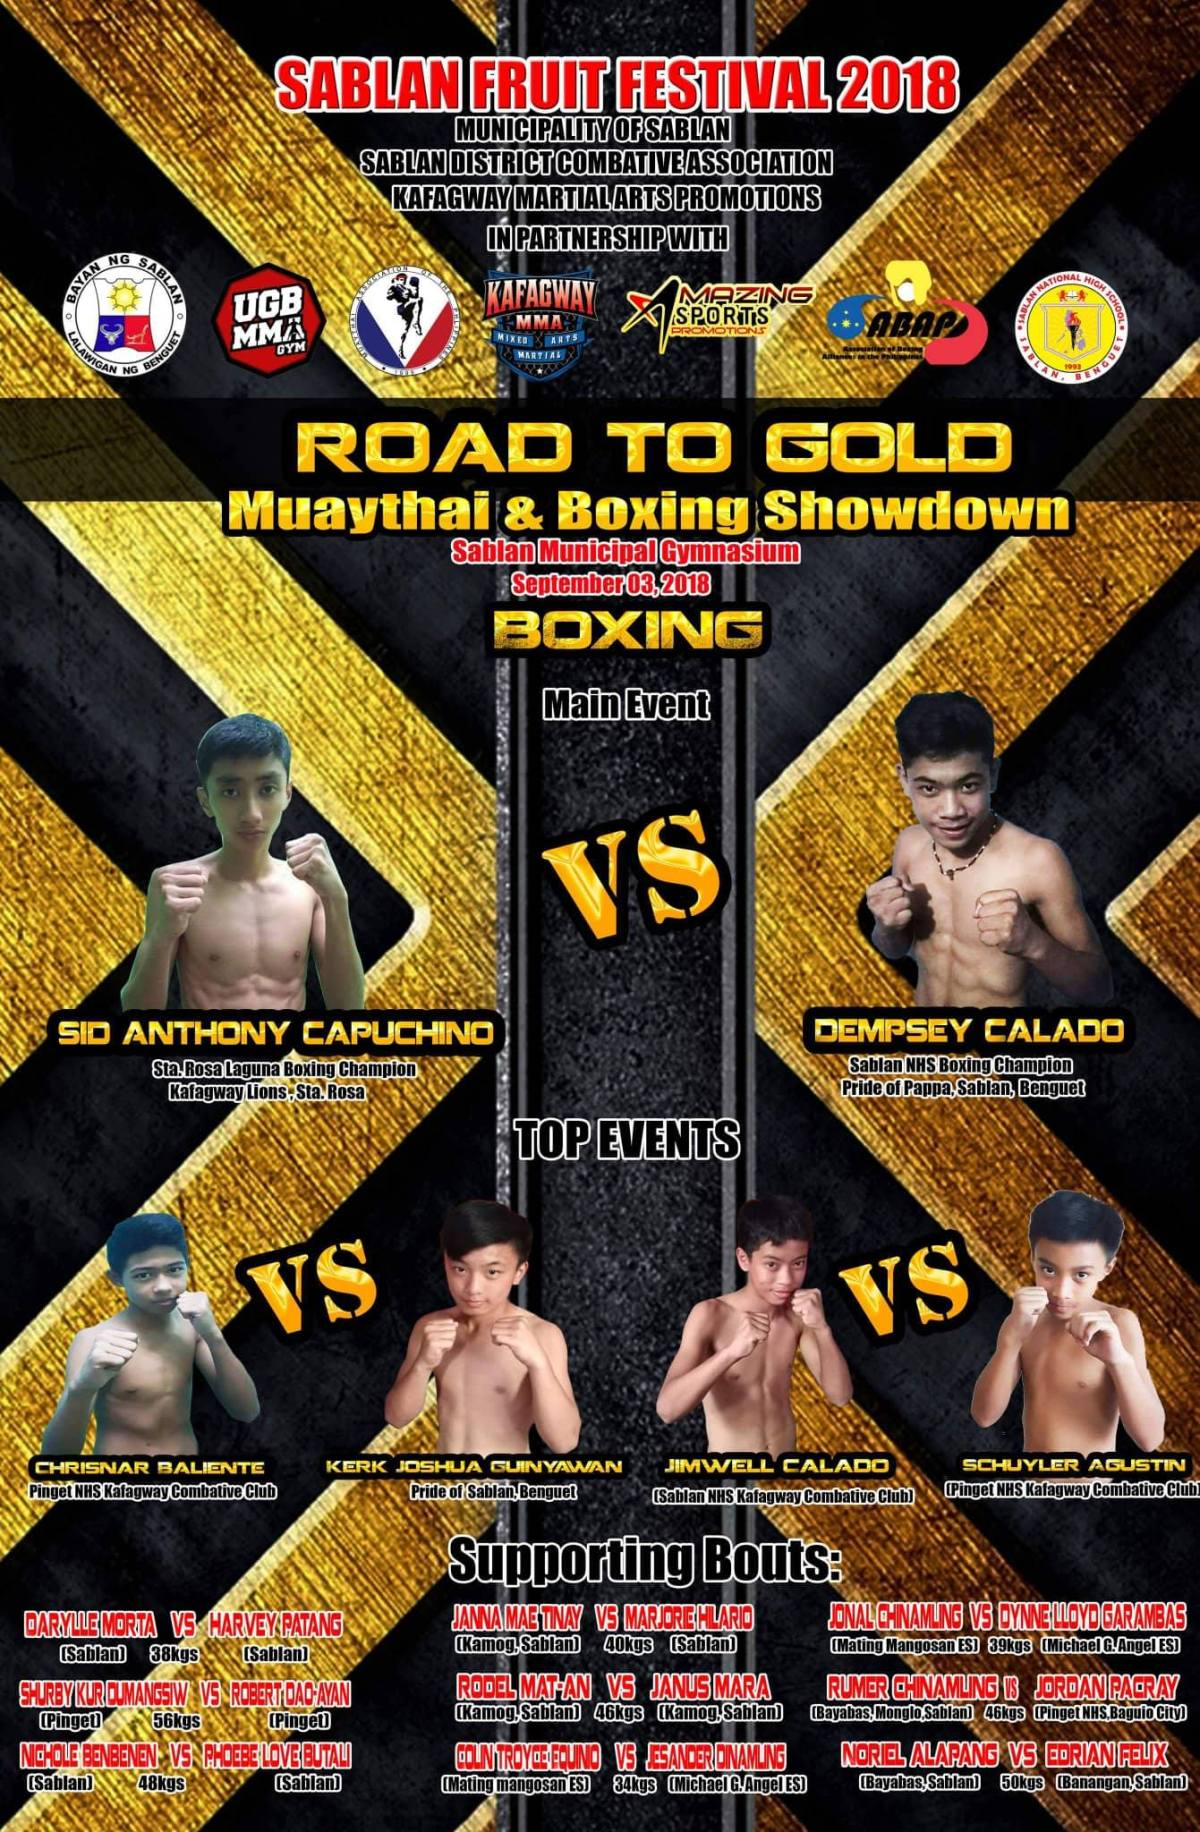 'Road to Gold' Muaythai and boxing showdown